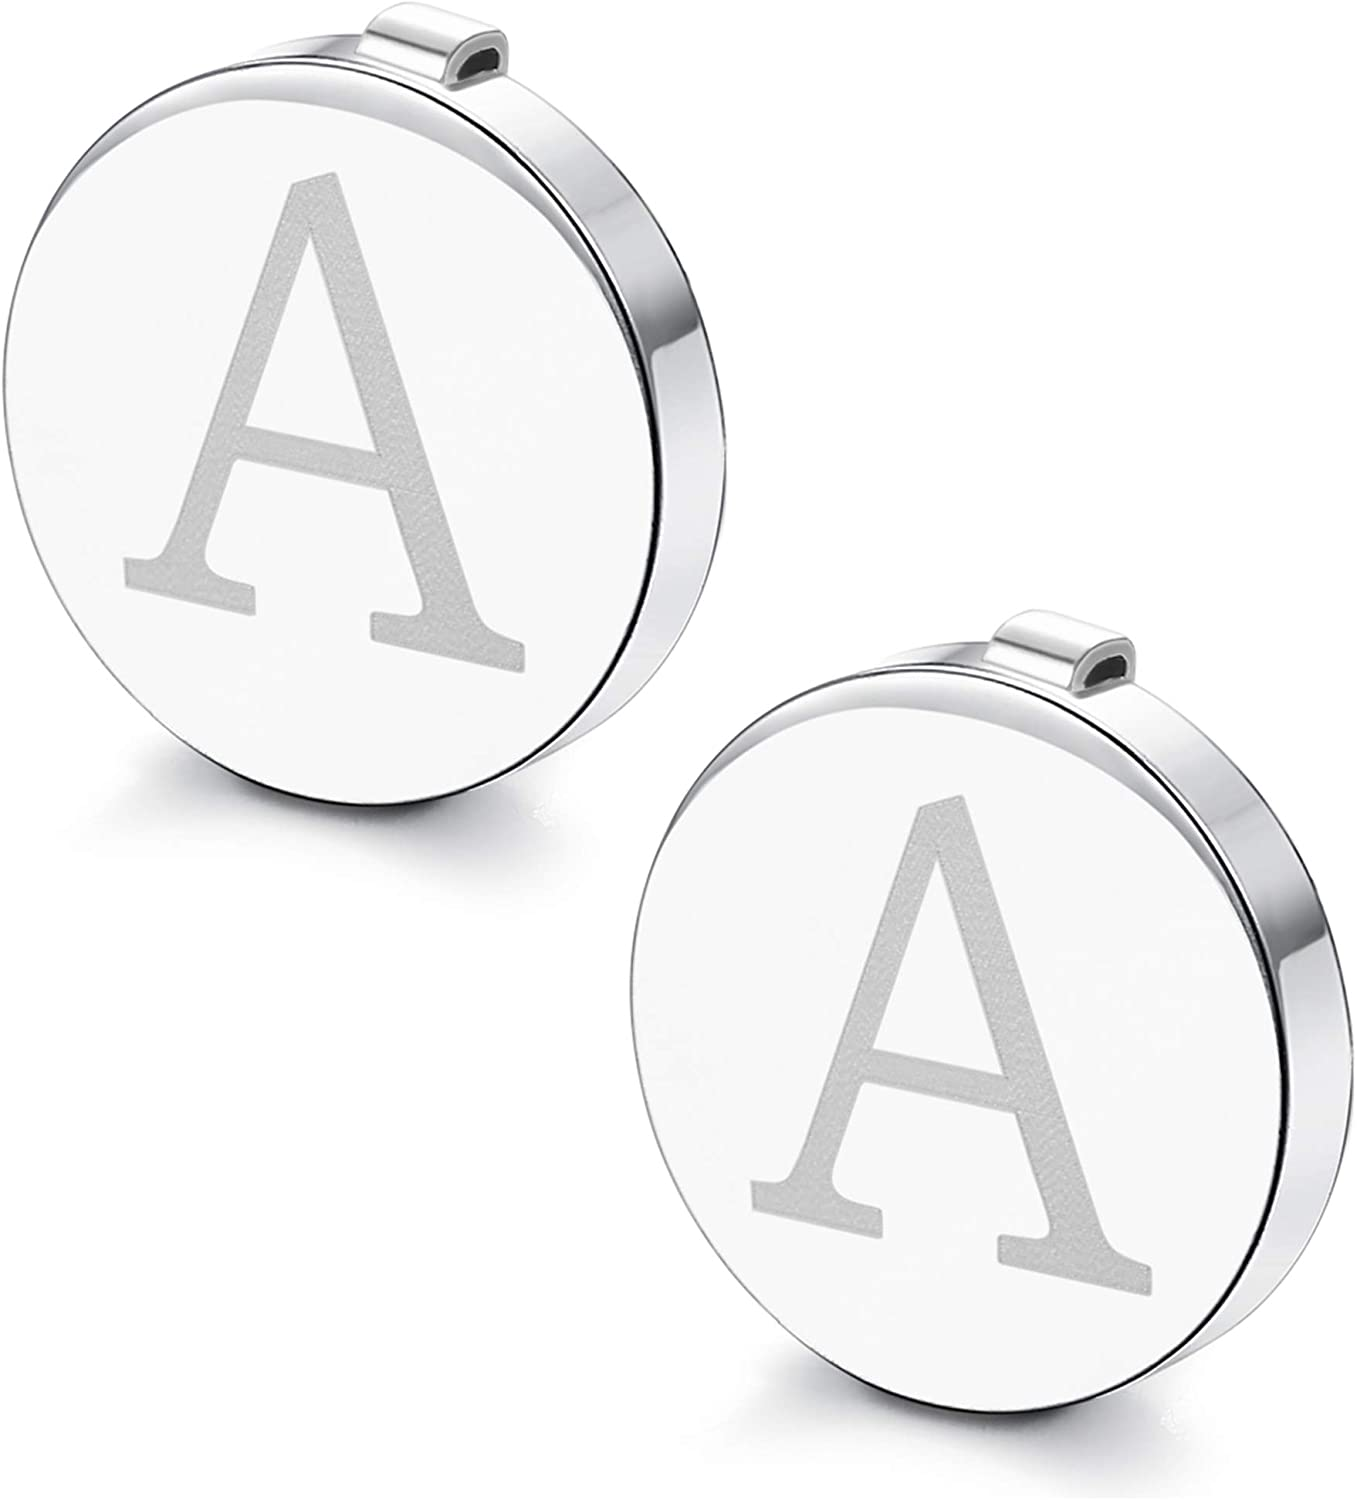 Fiasaso A-Z Letter Button Cuff Links for Men Initial Alphabet Cover Cufflinks